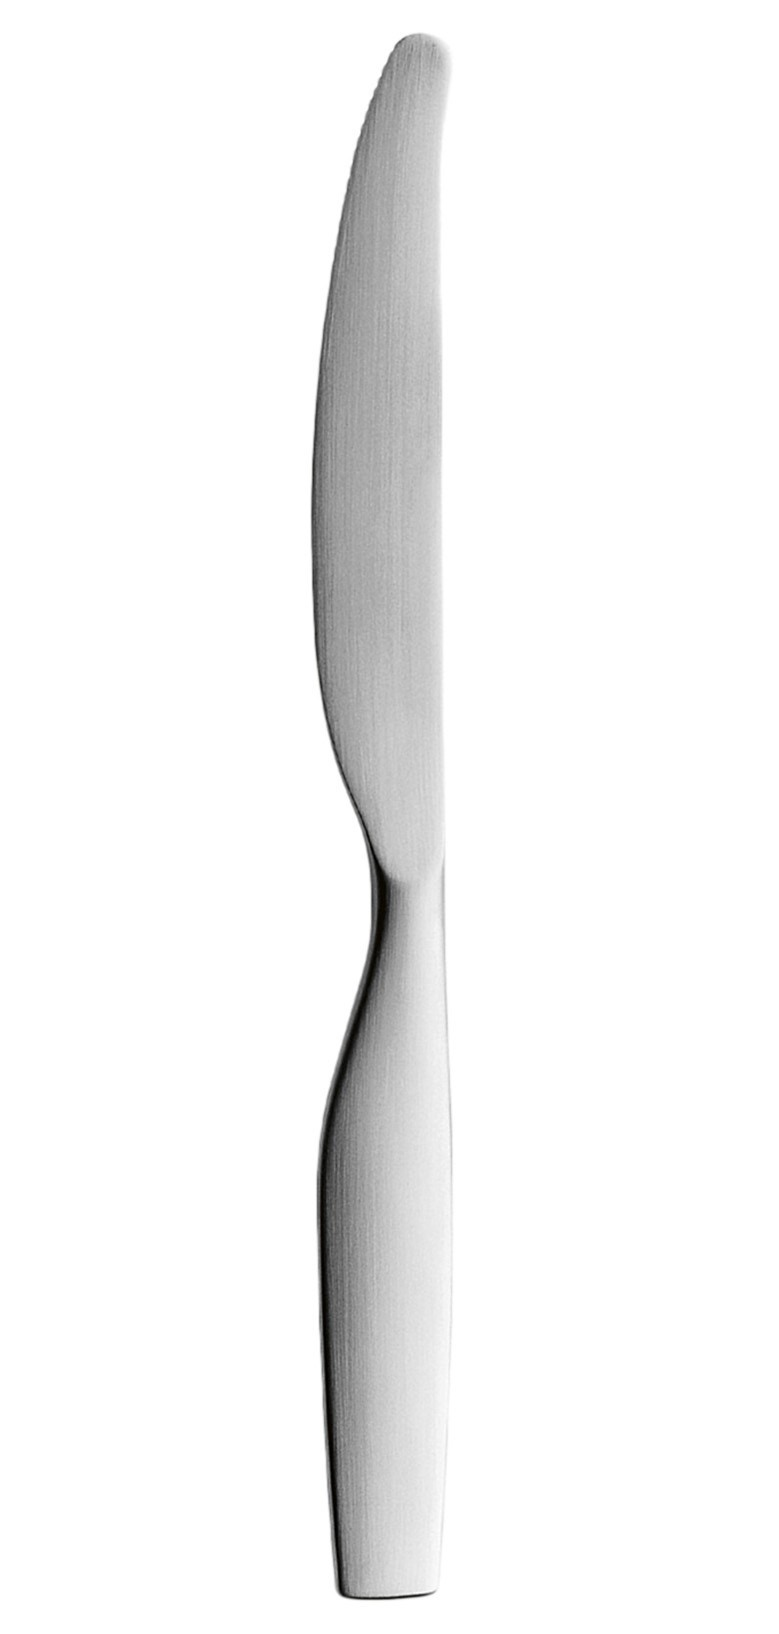 Iittala Citterio 98 Dinner Knife